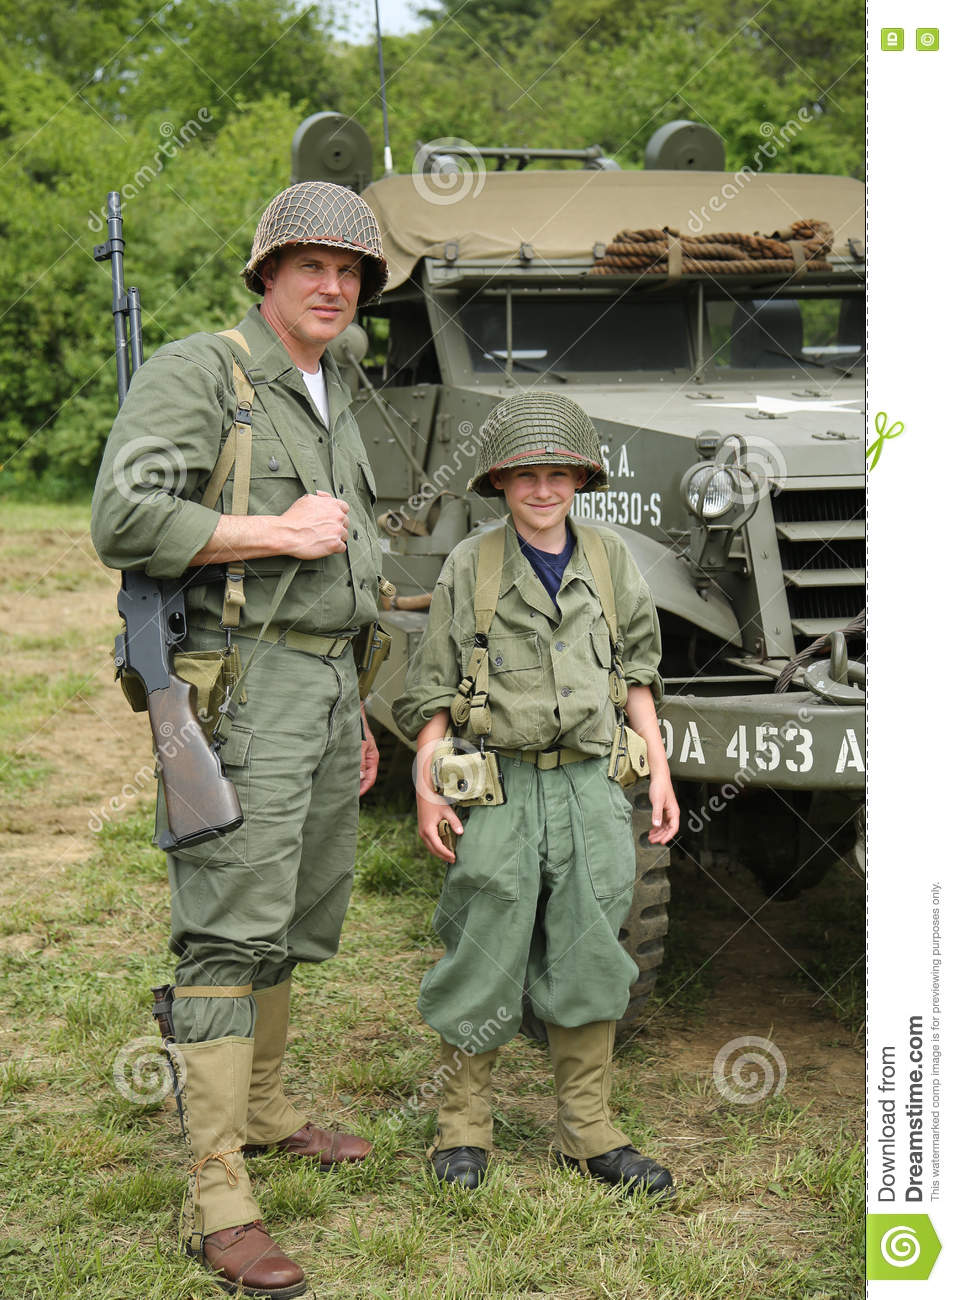 Ww2 American Soldier Uniform | www.imgkid.com - The Image ...